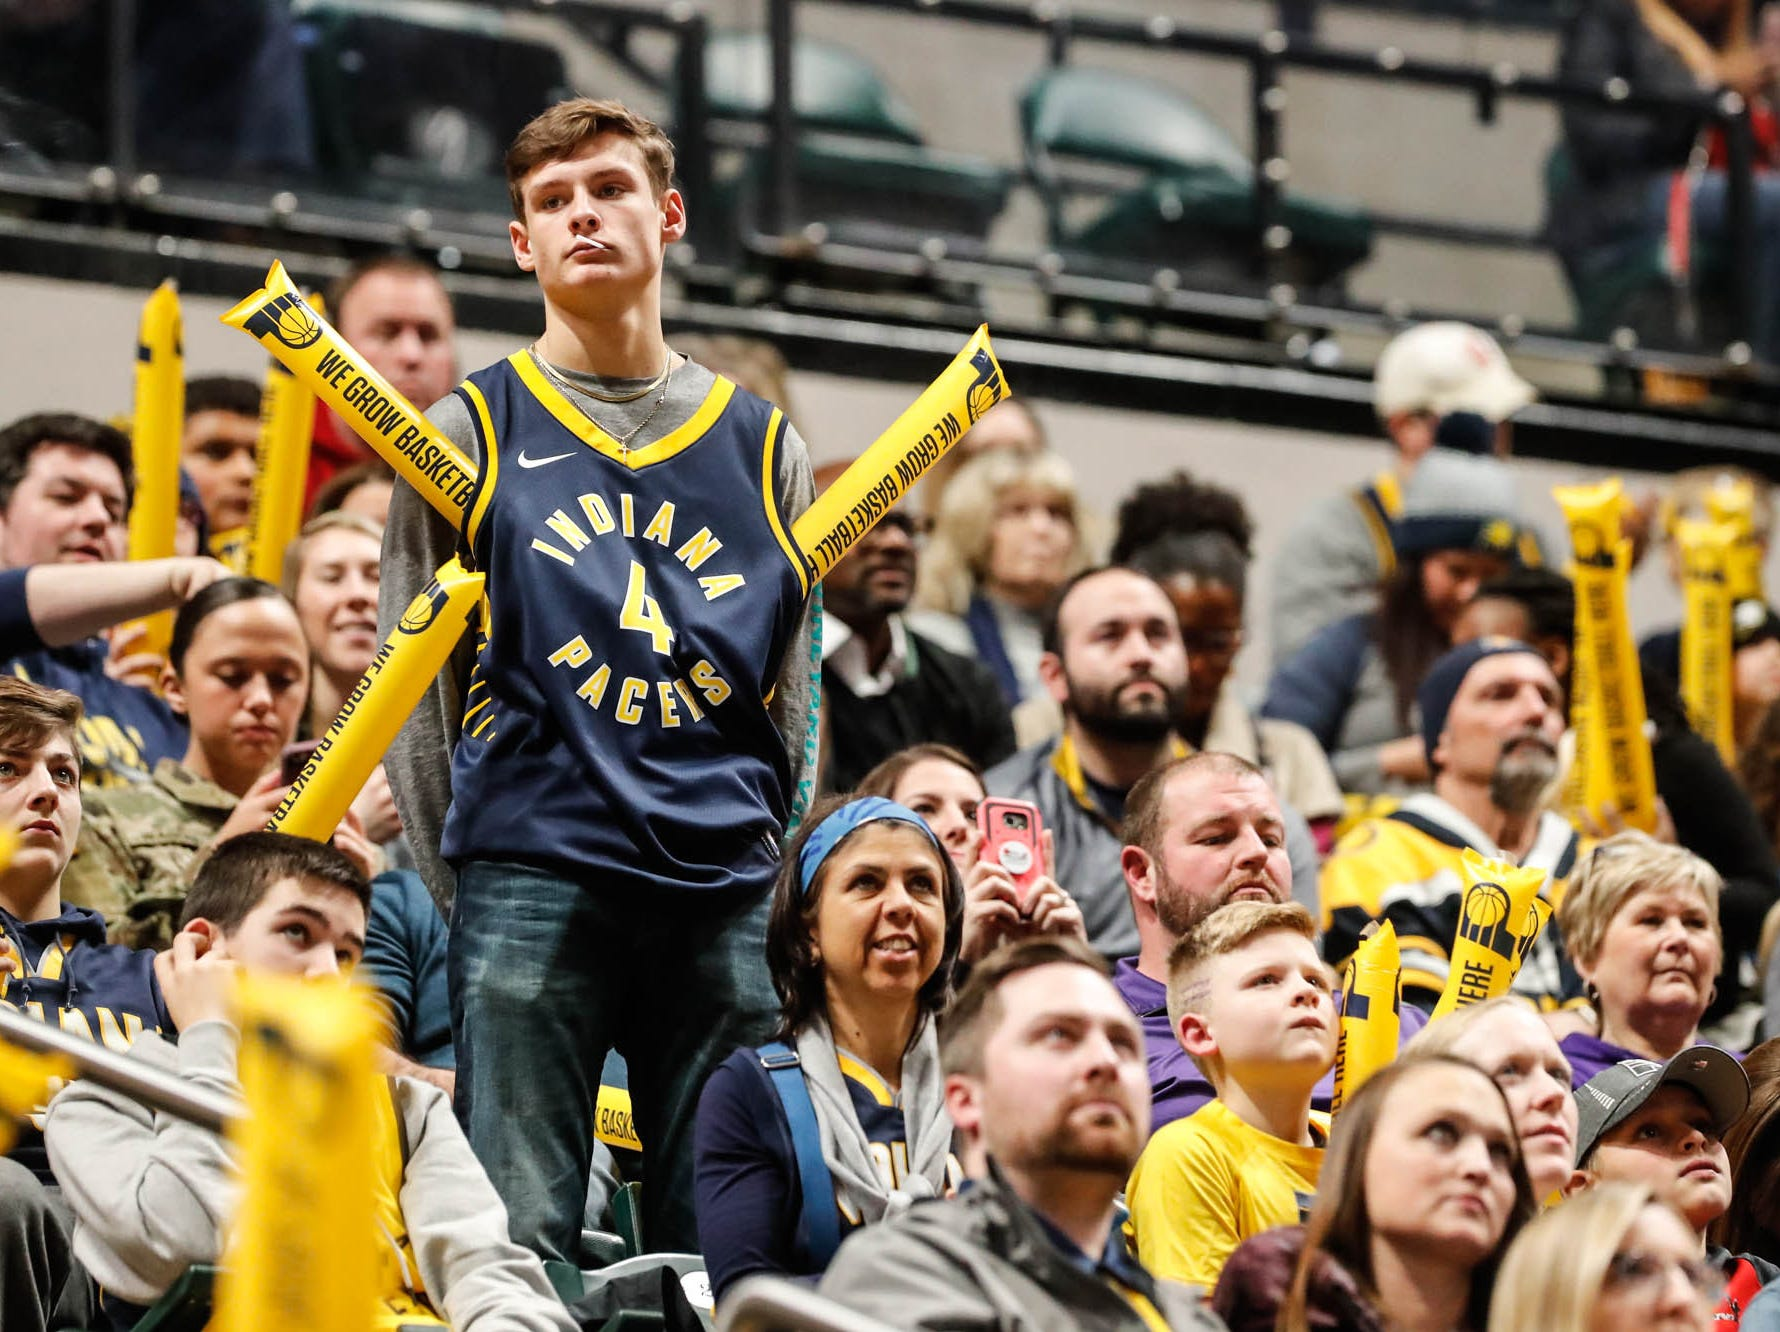 A fan gets creative with his noise makers during a game between the Pacers and Hornets at Bankers Life Fieldhouse on Sunday, Jan. 20, 2019.